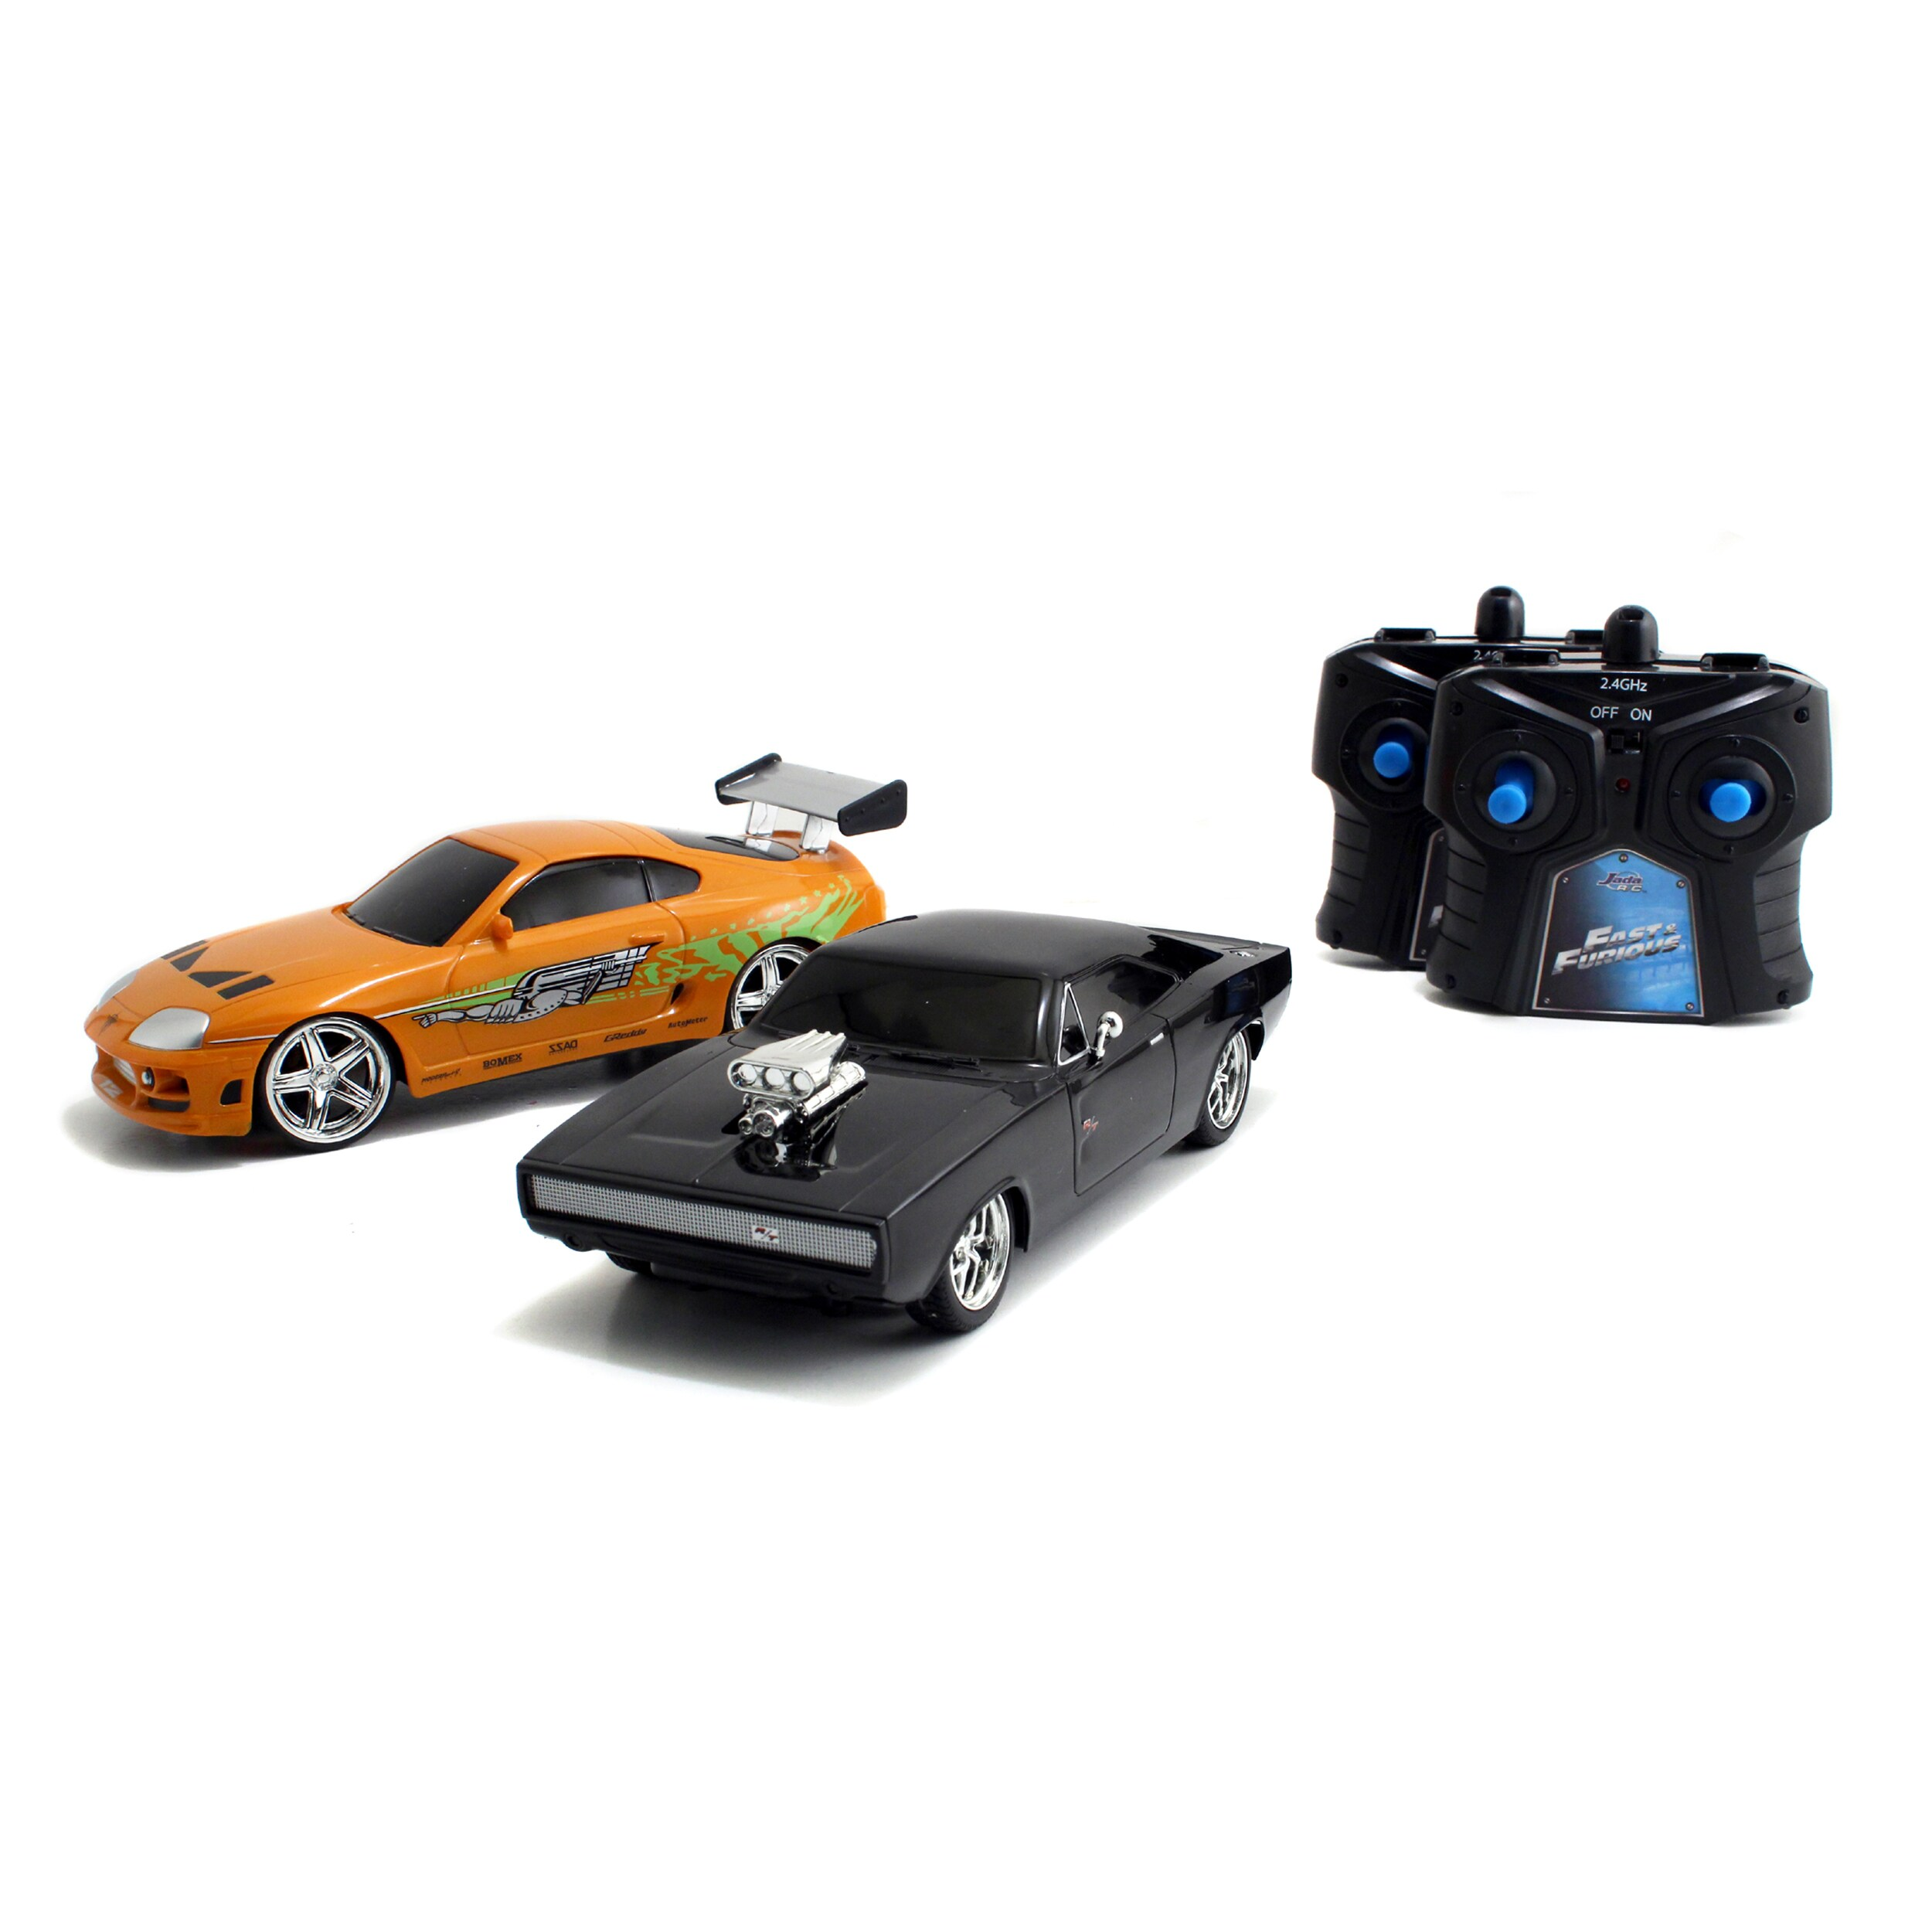 Fast and Furious RC Toyota Supra and Dodge Charger Set Free